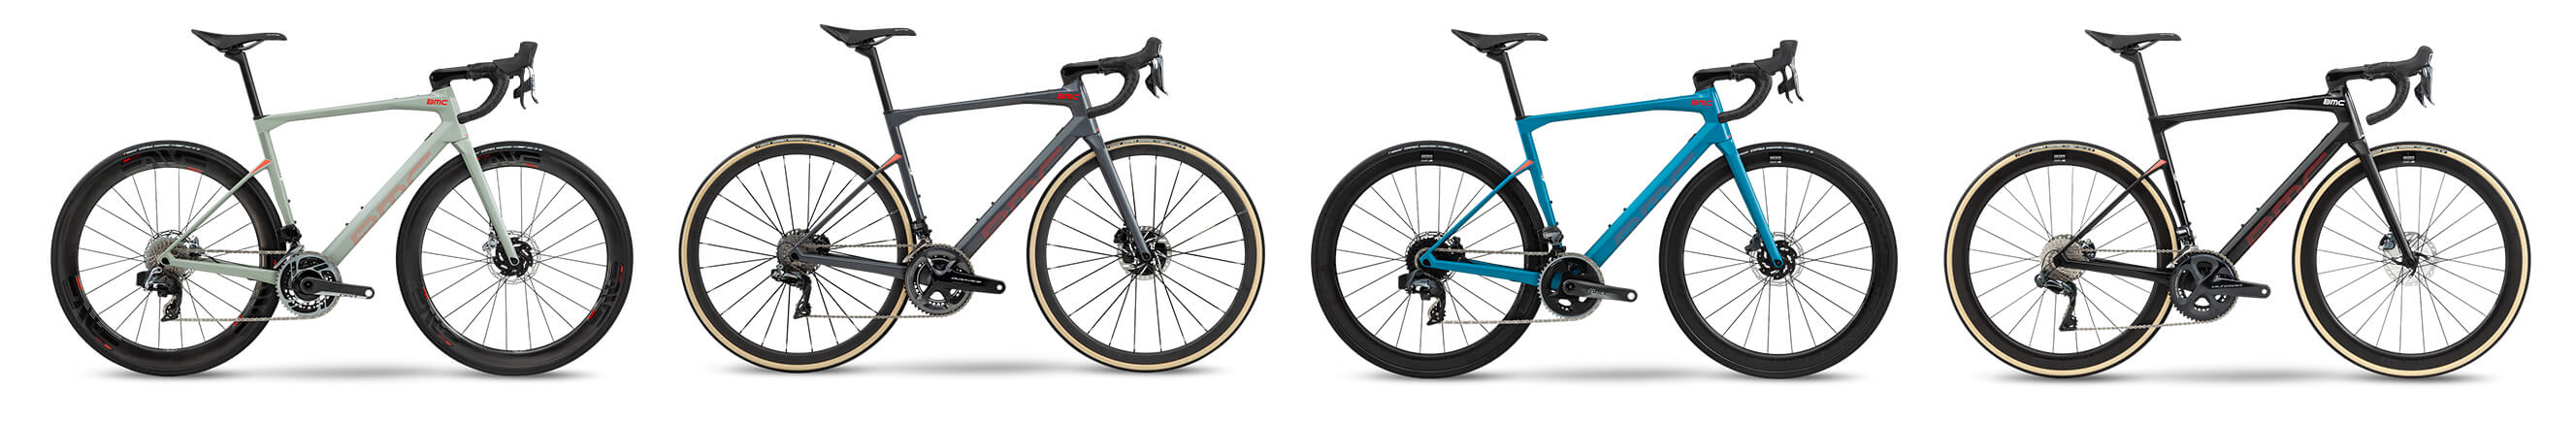 2020 BMC Roadmachine RM01 01 Lineup - Contender Bicycles